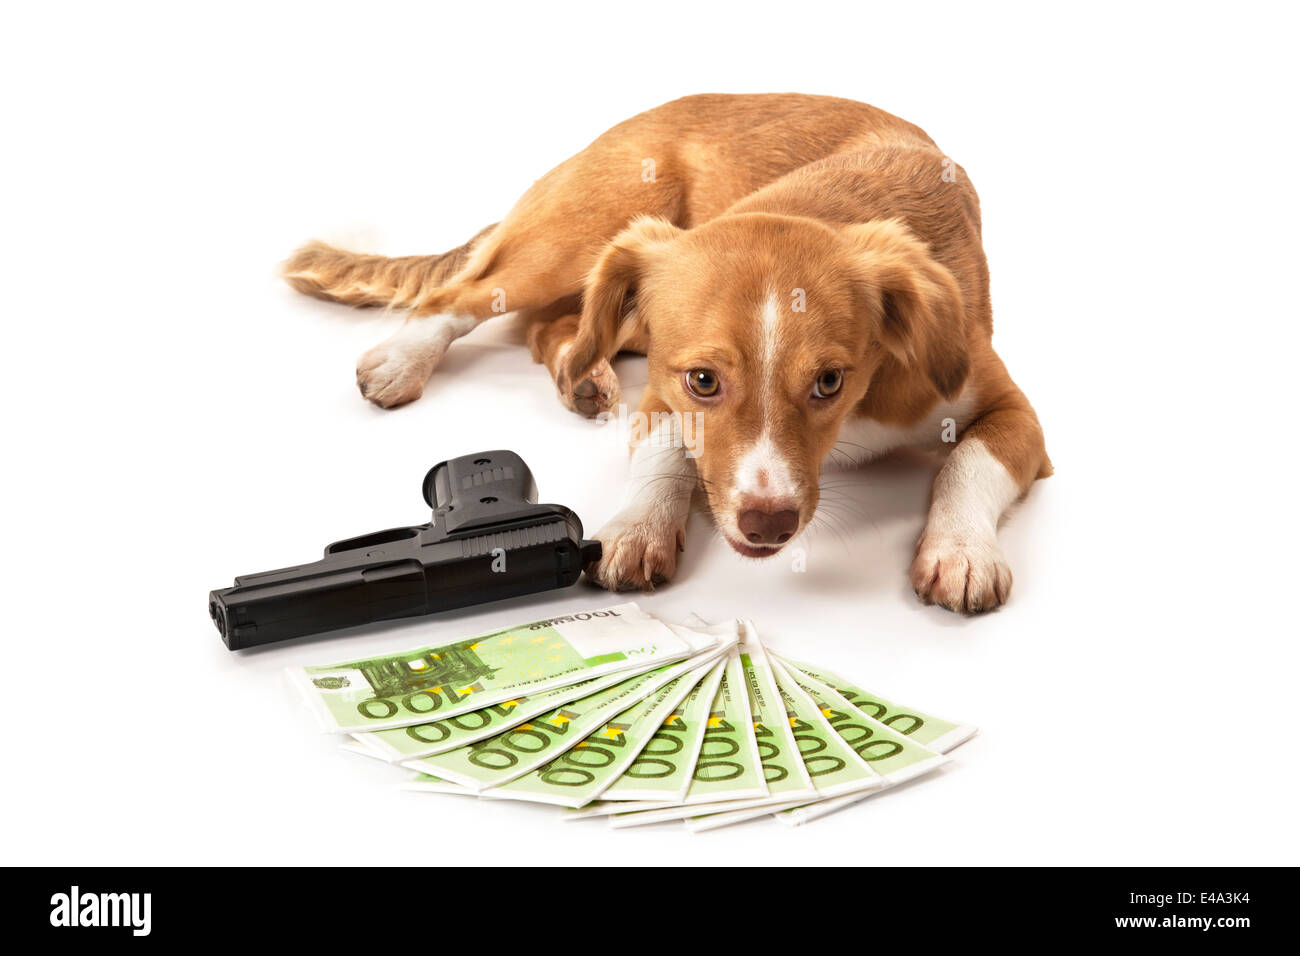 Portrait of dog in front of handgun and euro banknote over white background - Stock Image